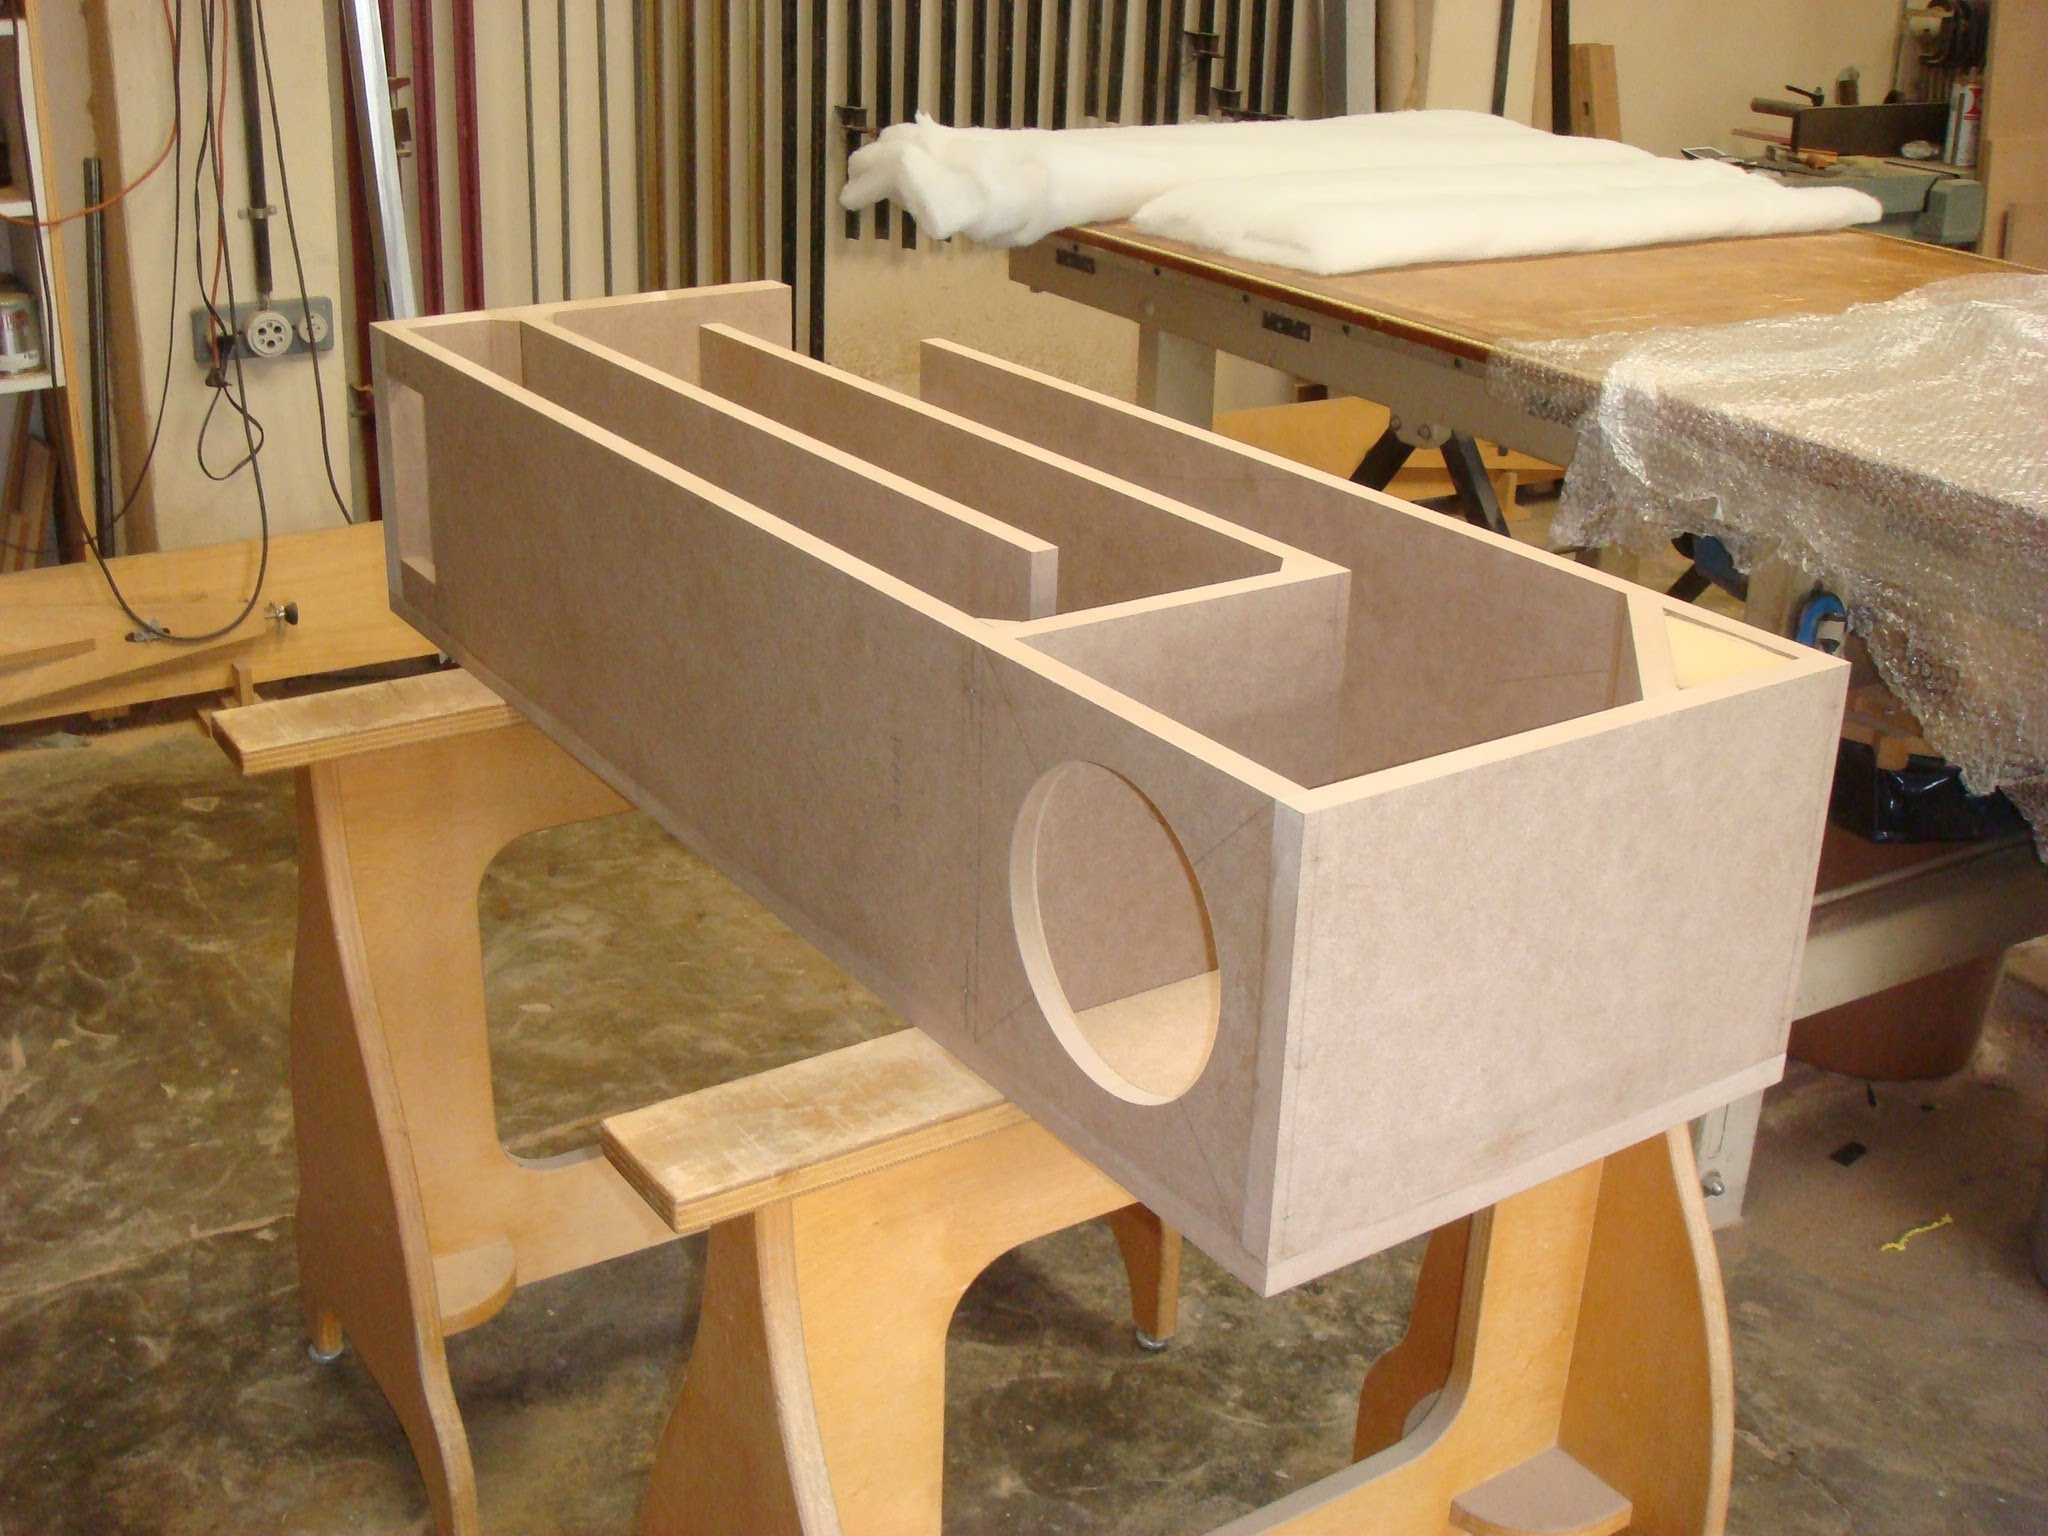 How to build a really big transmission line subwoofer - Quora